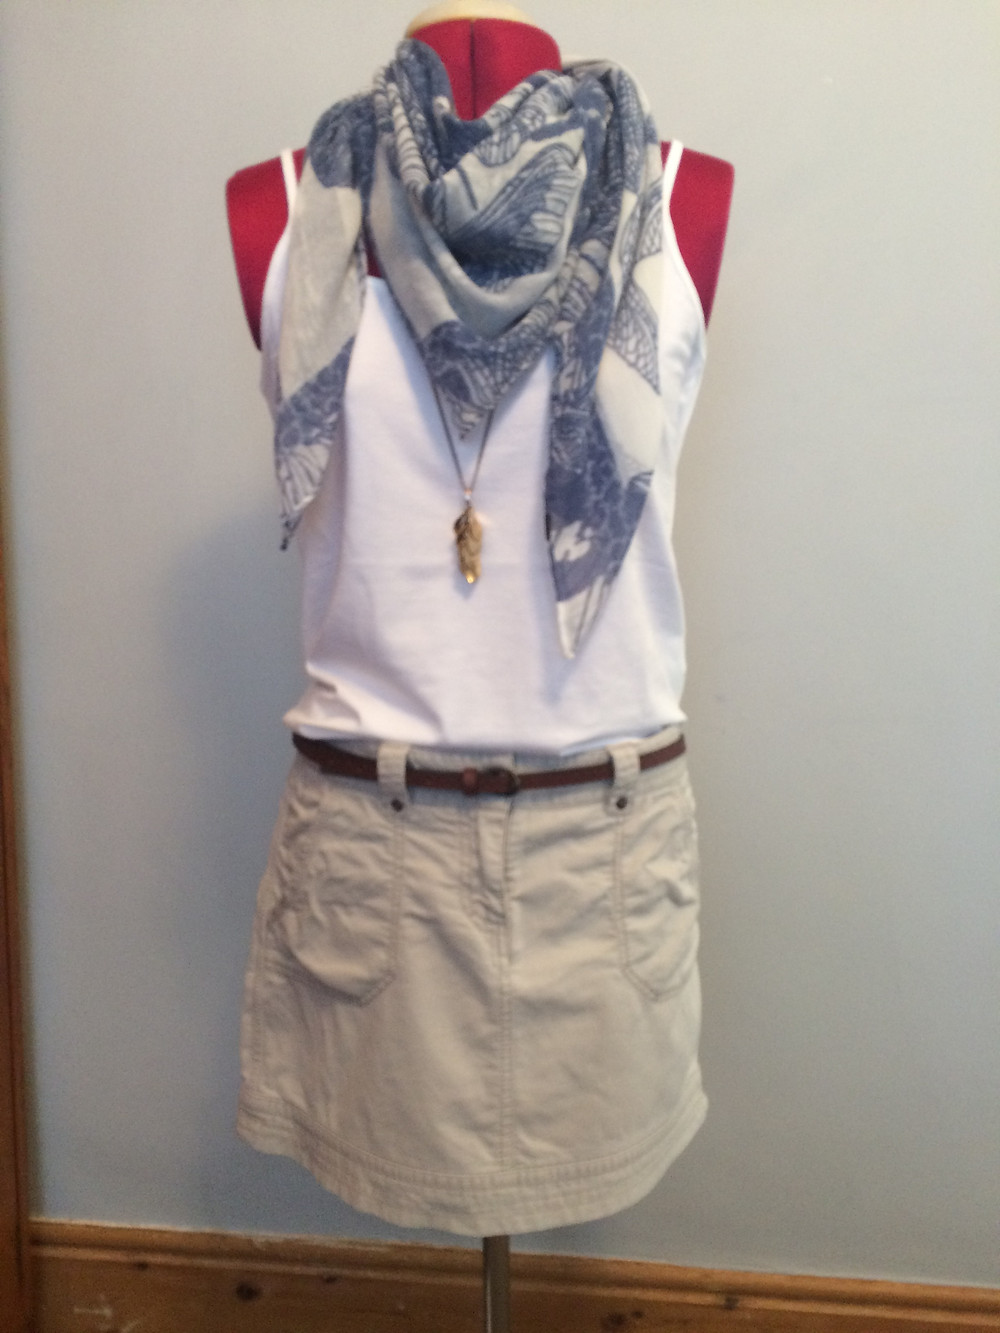 outfit, accessories, personal styling, blue and white, scarves